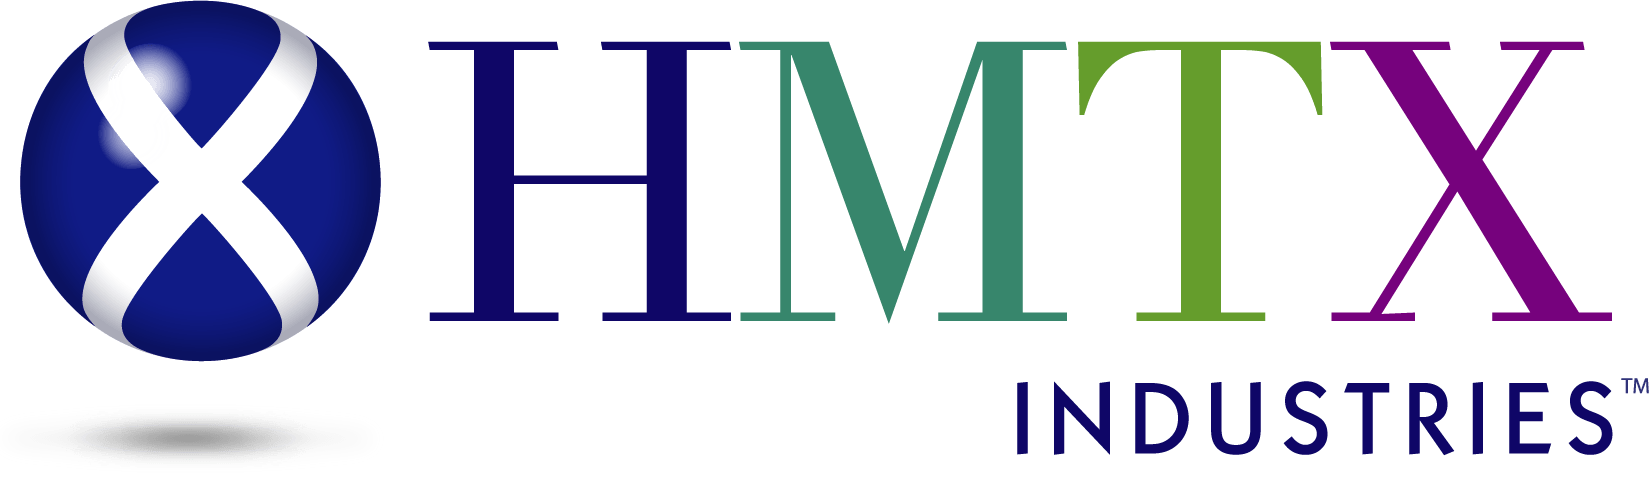 HMTX Industries